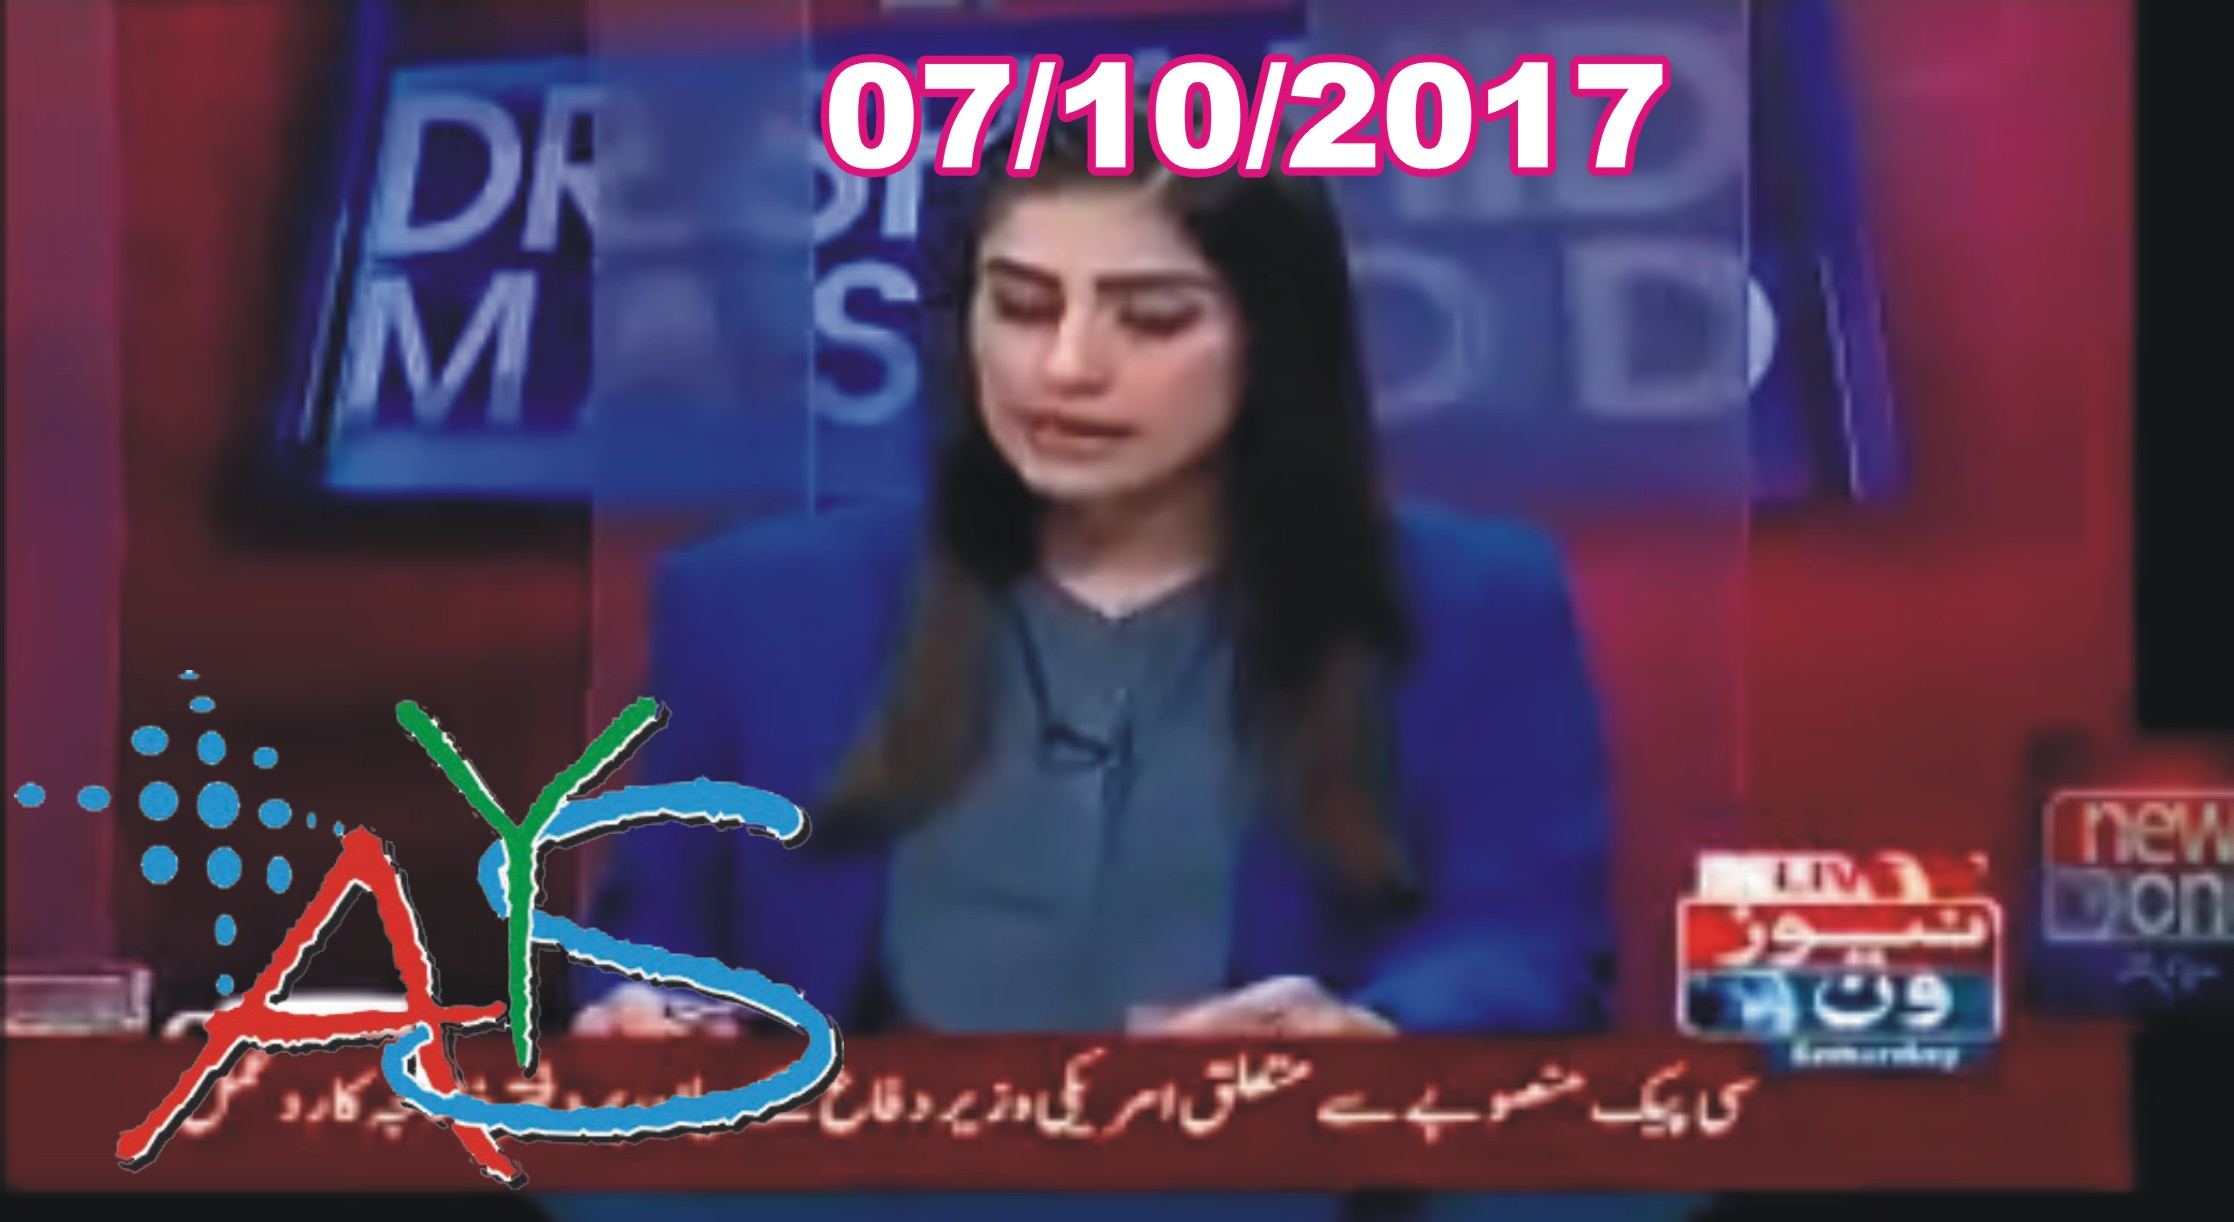 07 Oct 2017 -  Khatm E Nabuwat Changing -Part 2 - YouTube